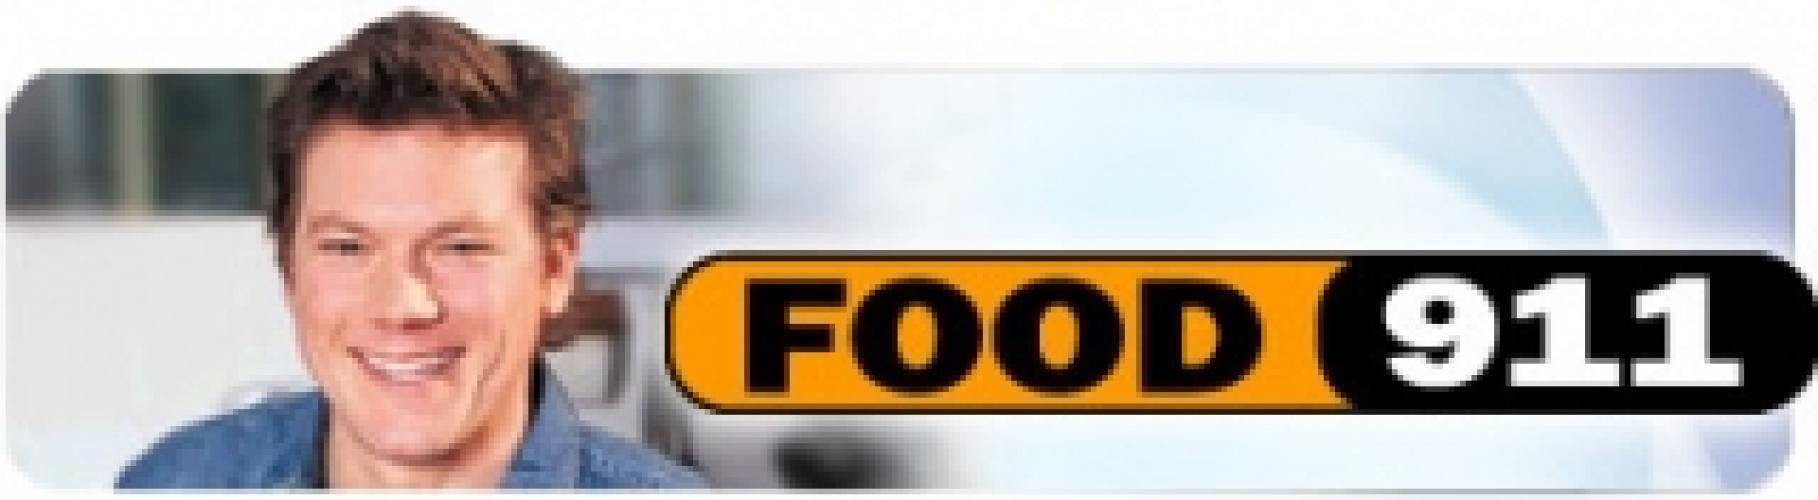 Food 911 next episode air date poster